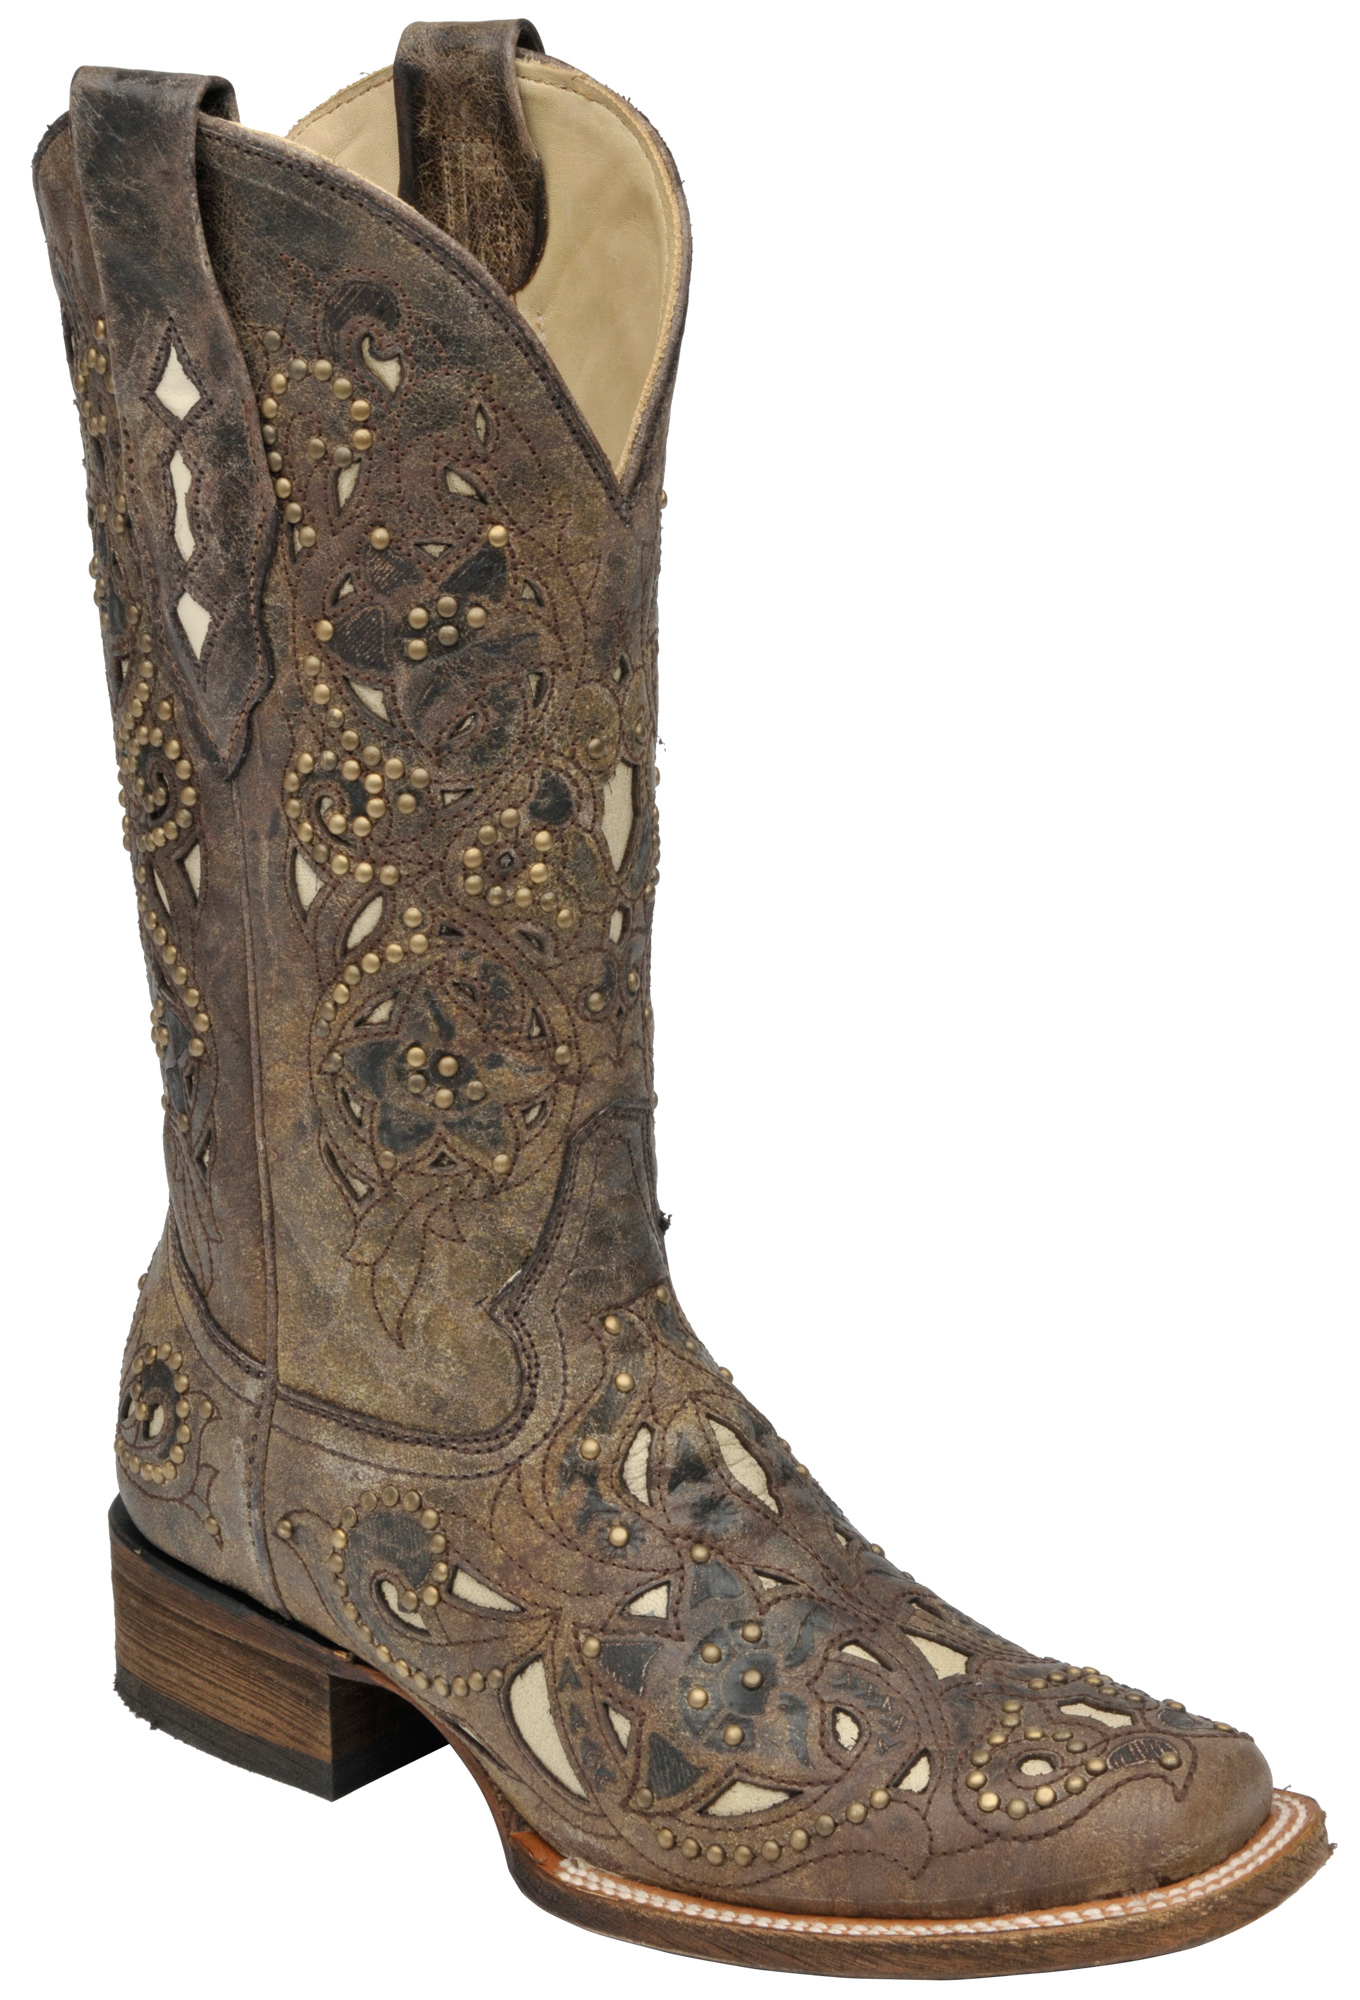 Innovative Corral Womenu0026#39;s Circle G Filigree Boots - Beige